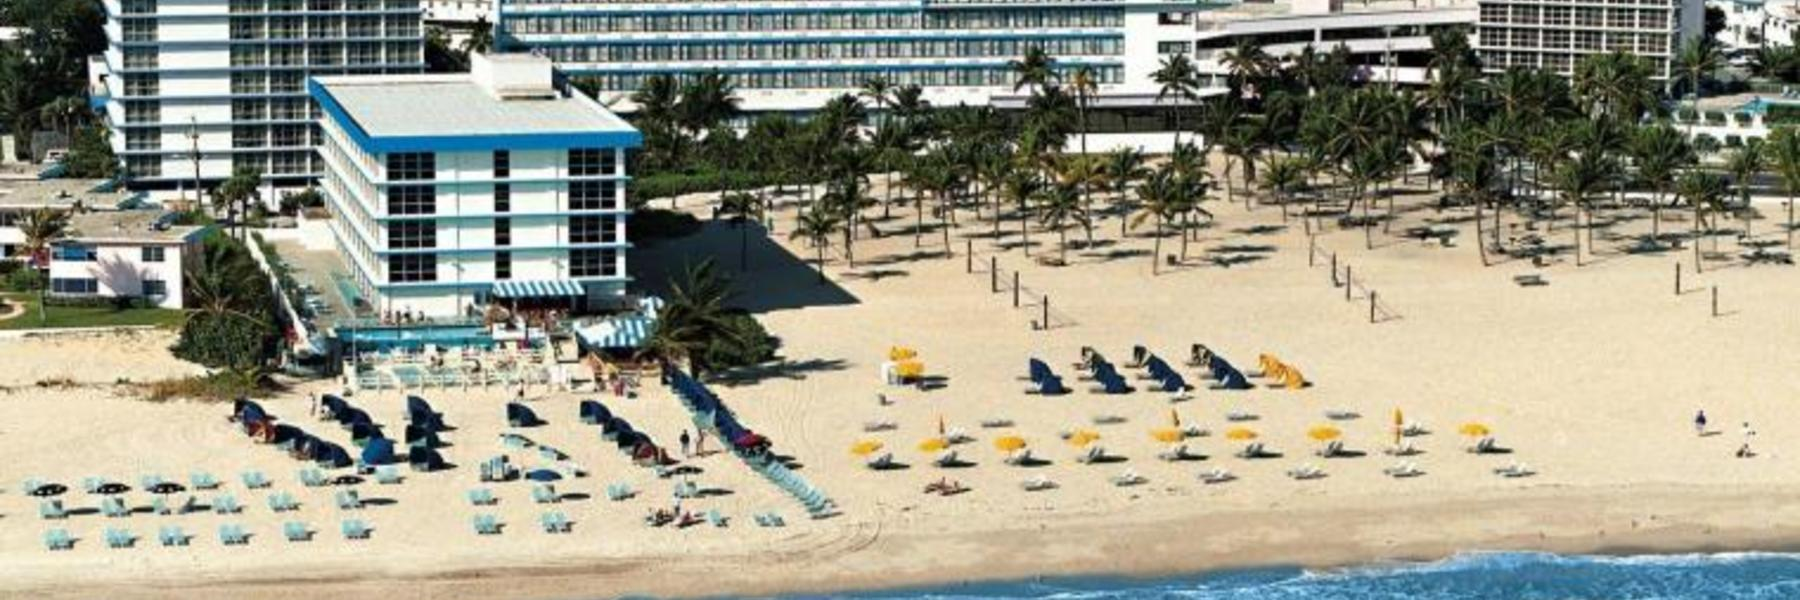 Golf Vacation Package - Fort Lauderdale Summer Sensation Package for $193 per day!